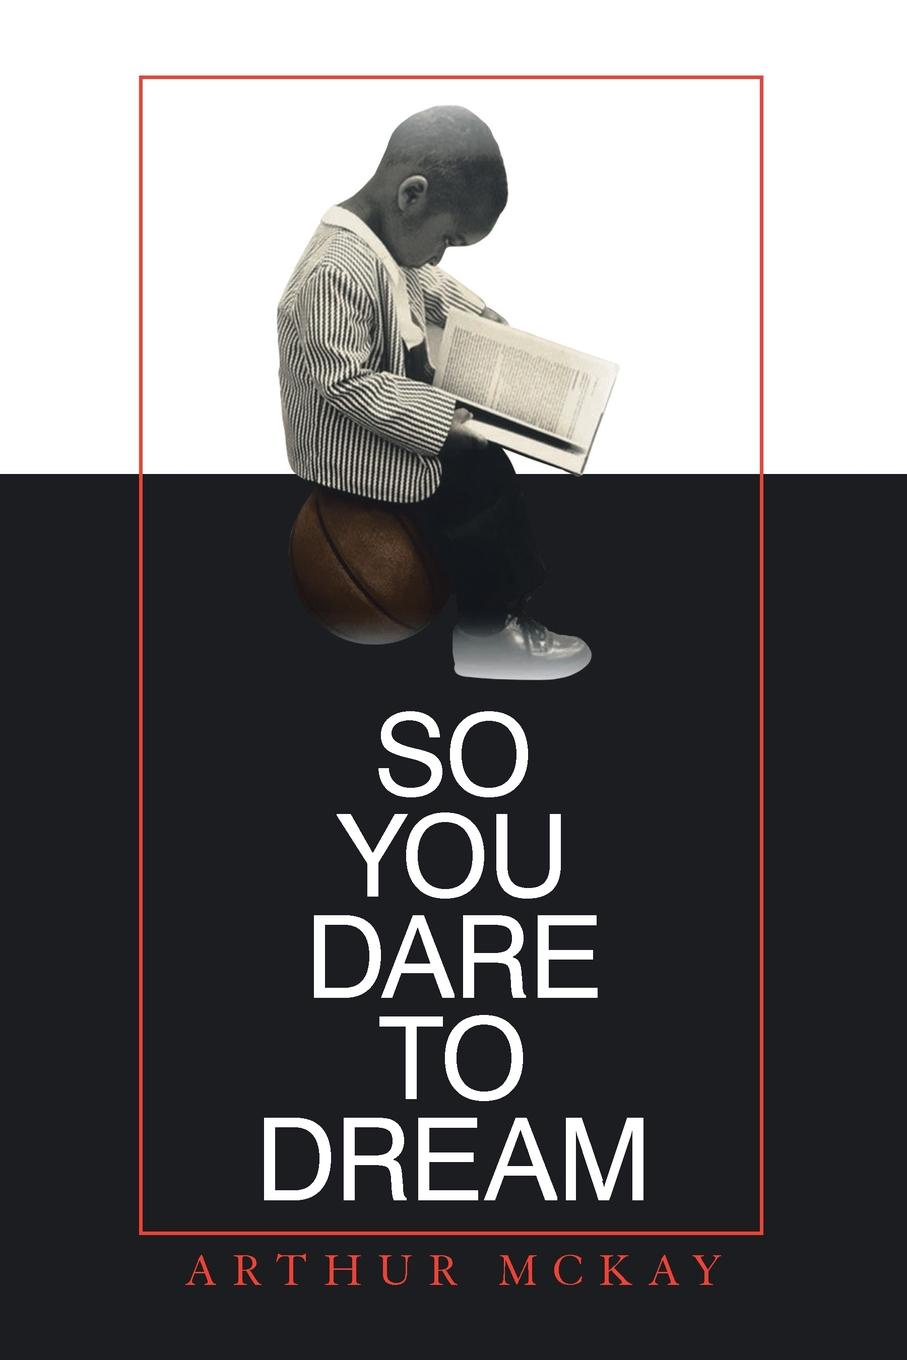 Arthur McKay So You Dare to Dream roger palmieri dream big i dare you better yet i double dare you